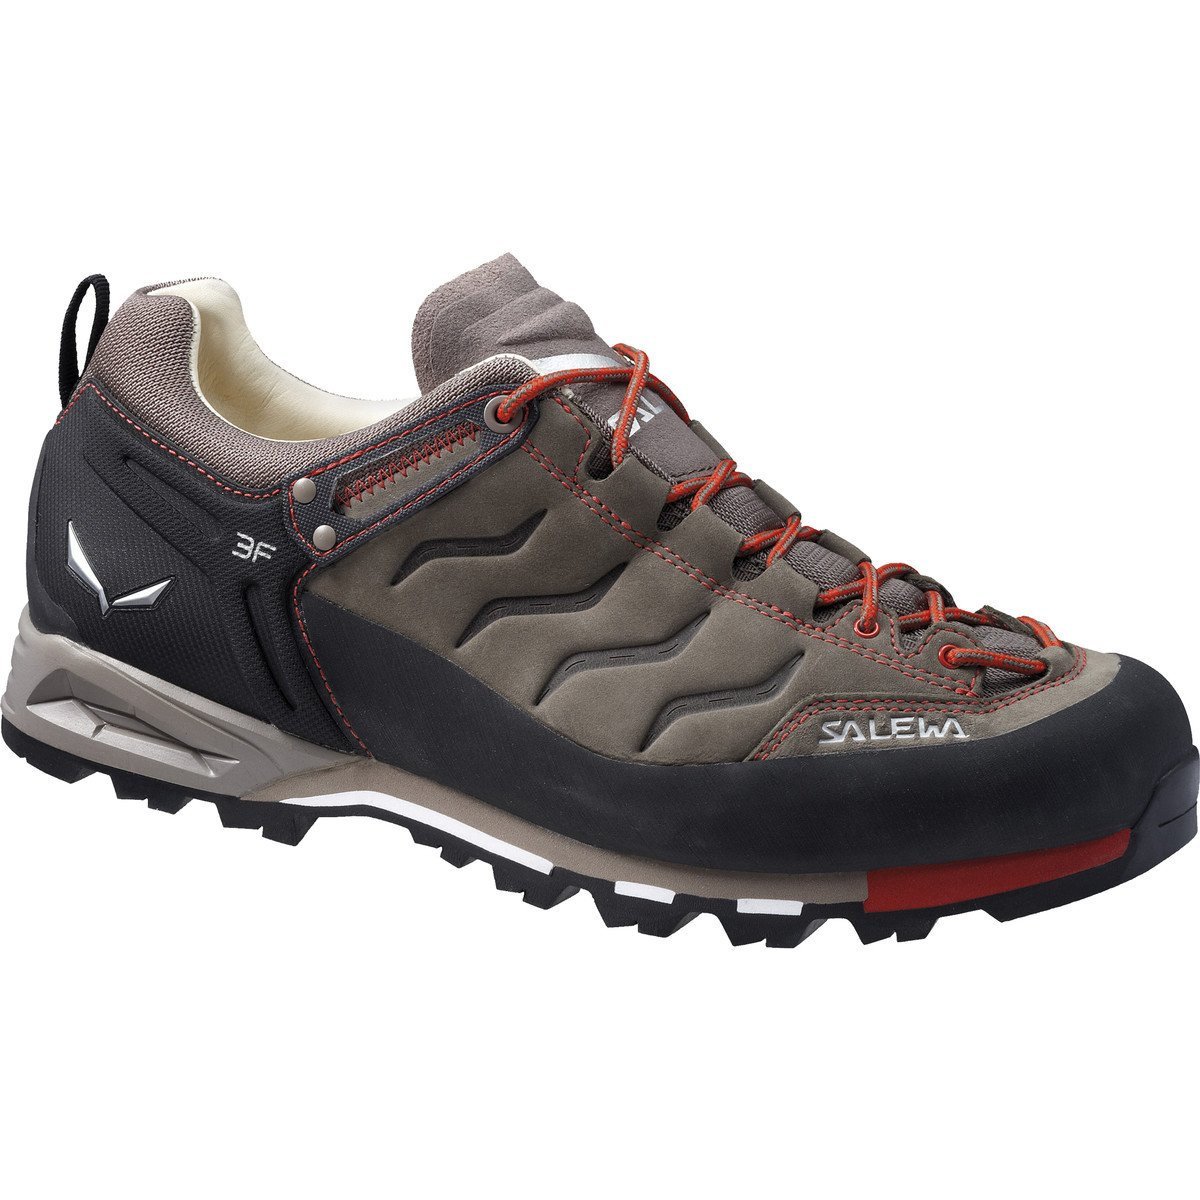 Salewa Men's Mountain Trainer Leather Approach Shoe, Bungee Cord/Firebrick, 9.5